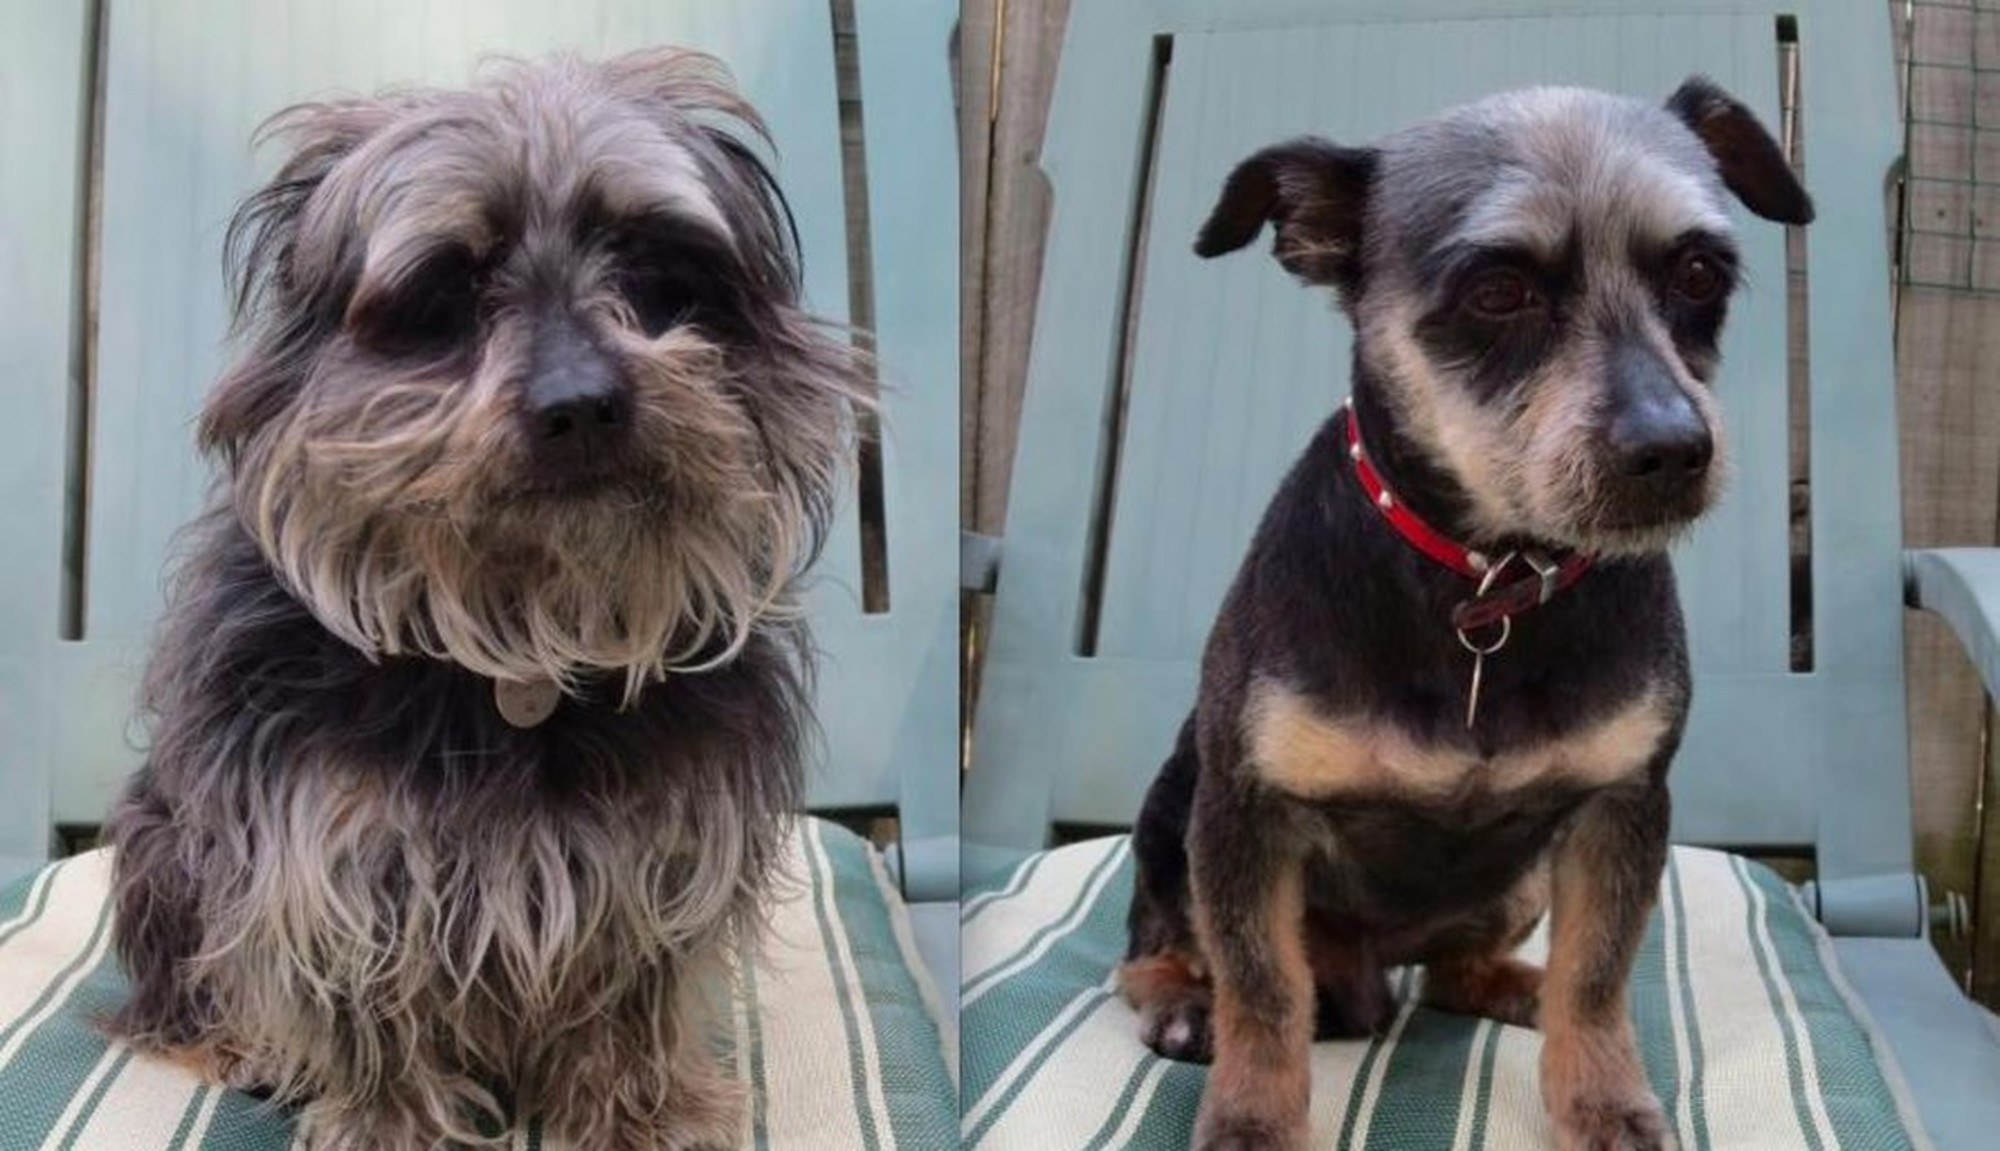 These Pets Look Adorable In Their New Haircuts Cuteness